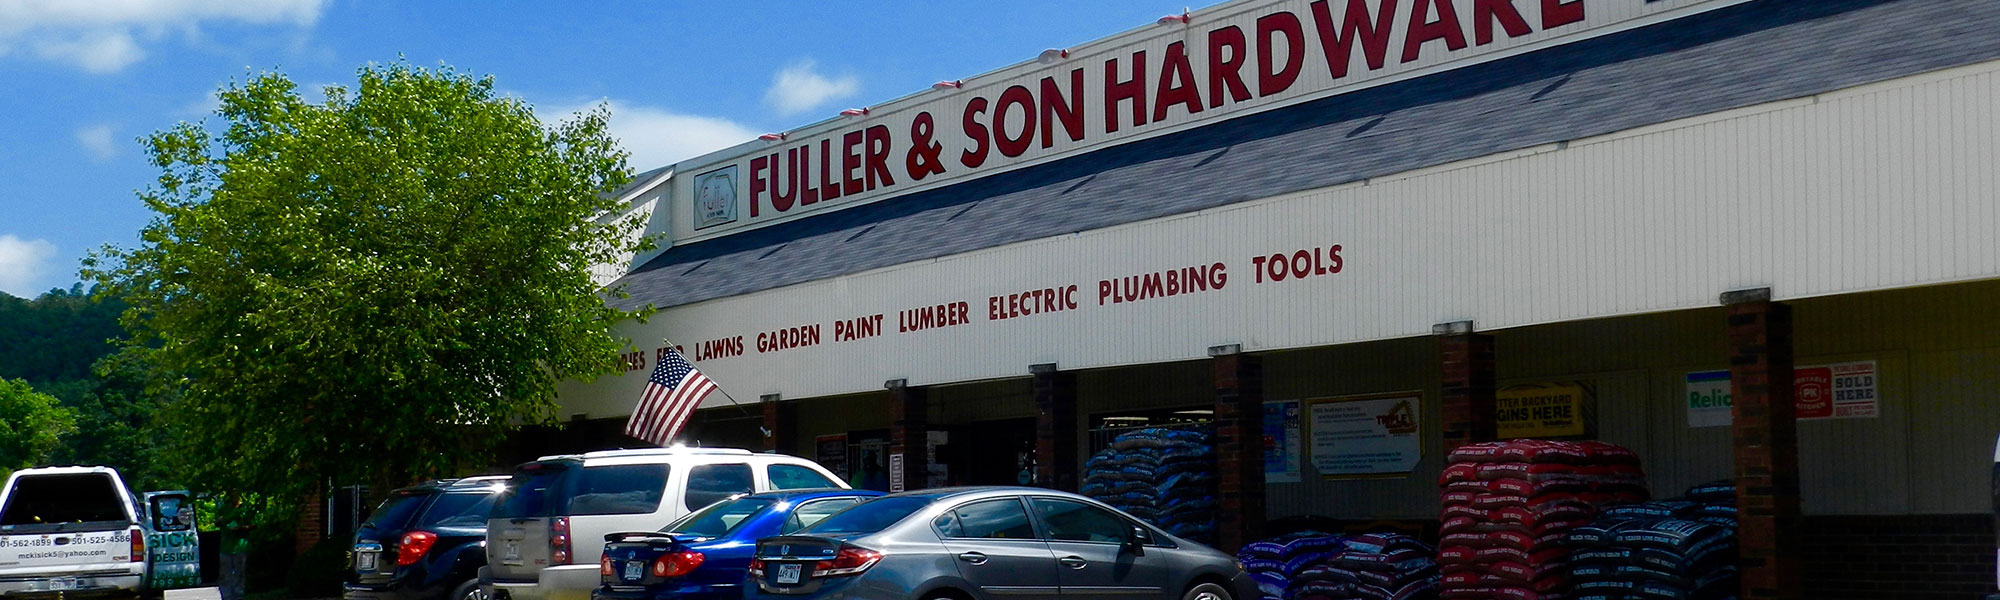 Fuller and Son Hardware Storefront with Parking